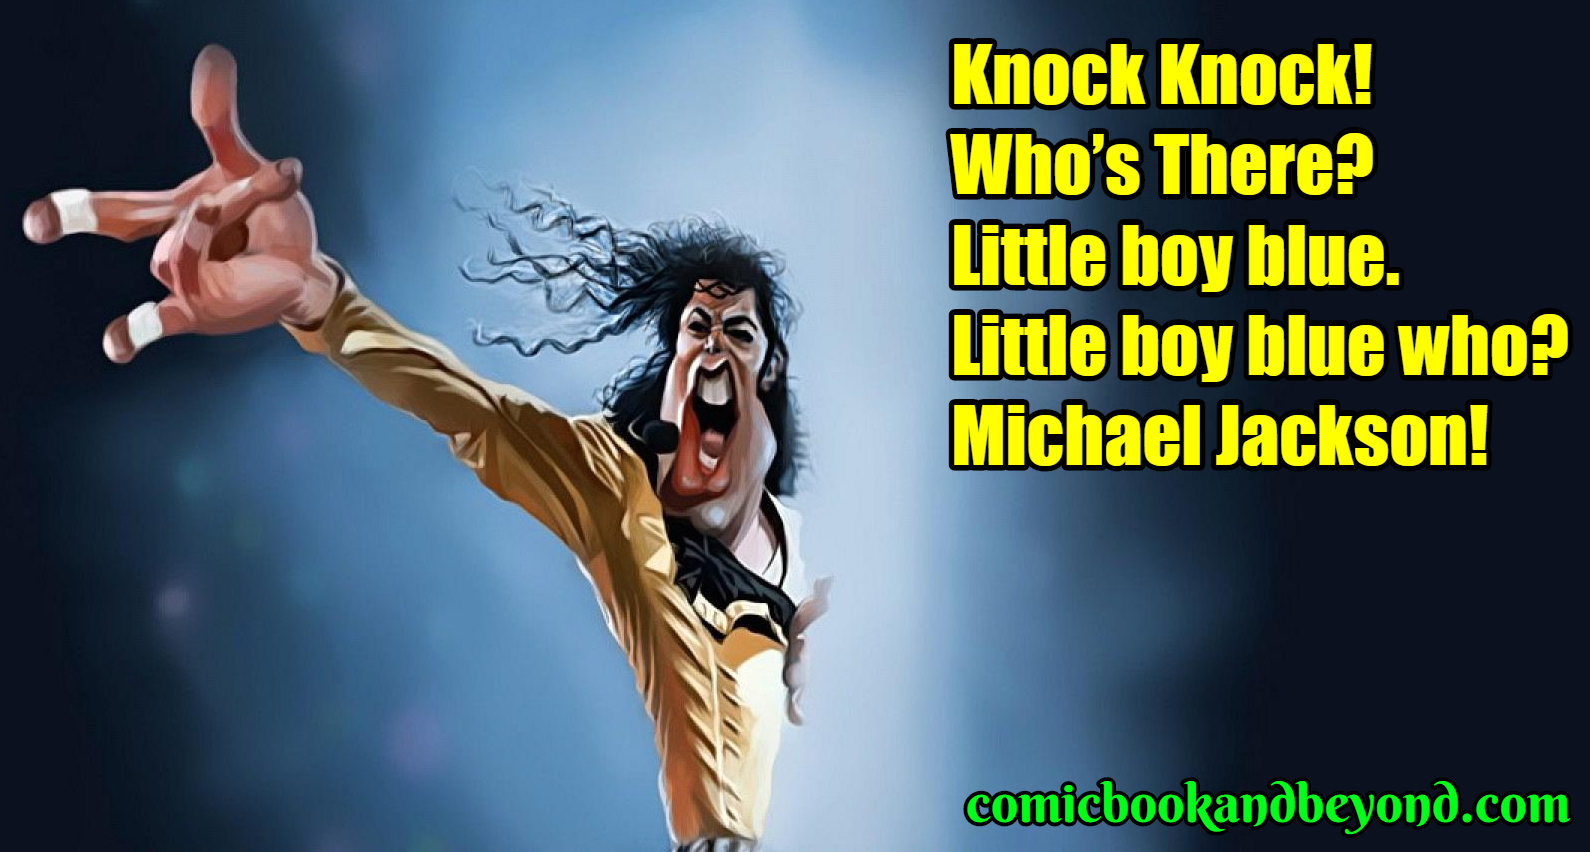 60 Dirty Knock Knock Jokes That Are So Ridiculous Comic Books Beyond